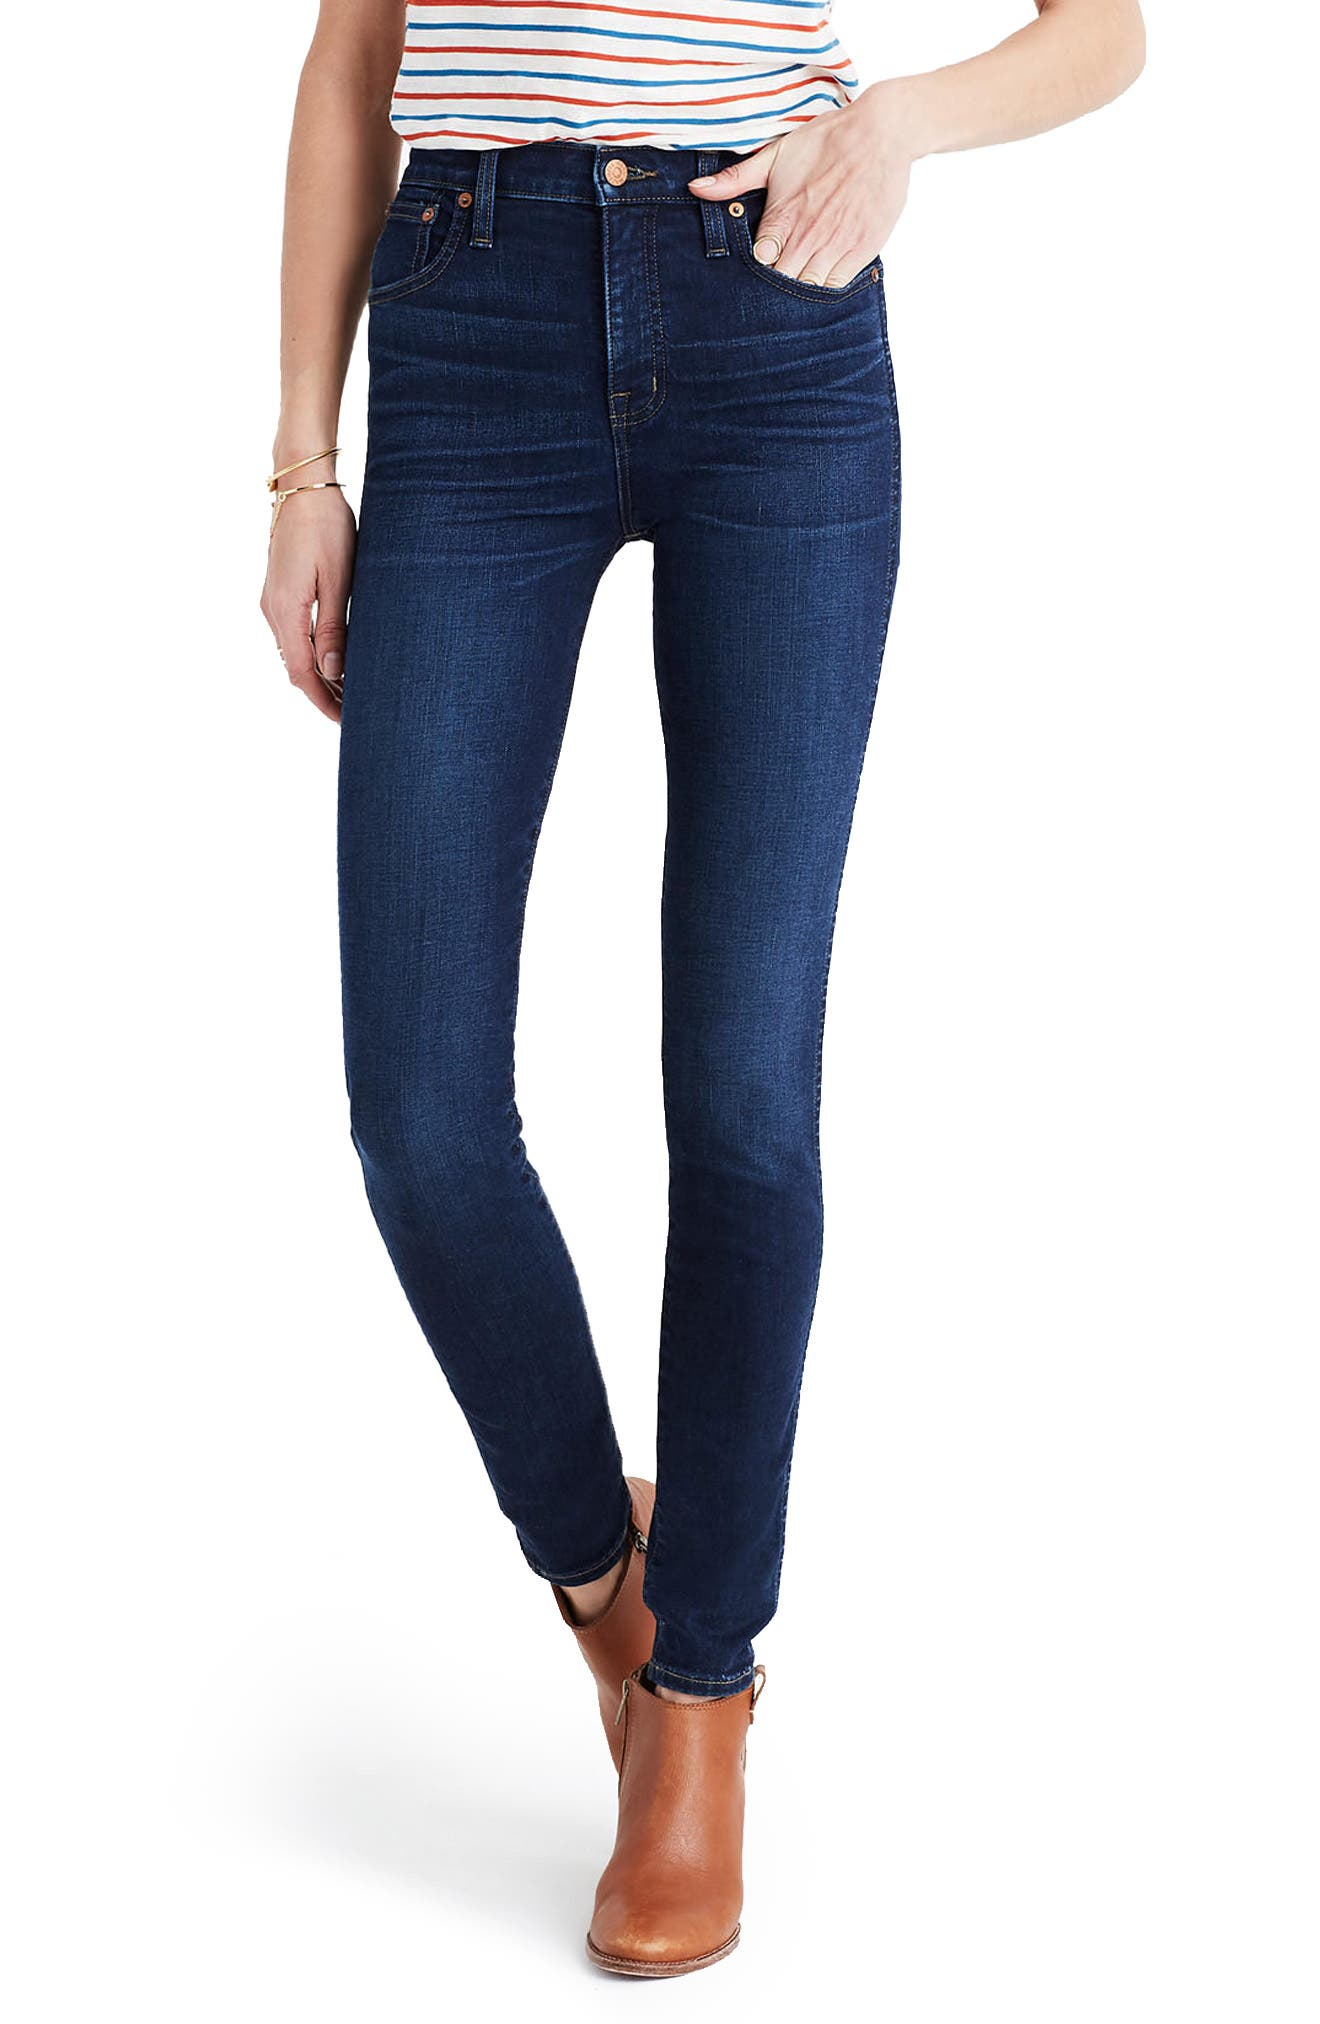 MADEWELL,                             10-Inch High Rise Skinny Jeans,                             Main thumbnail 1, color,                             HAYES WASH